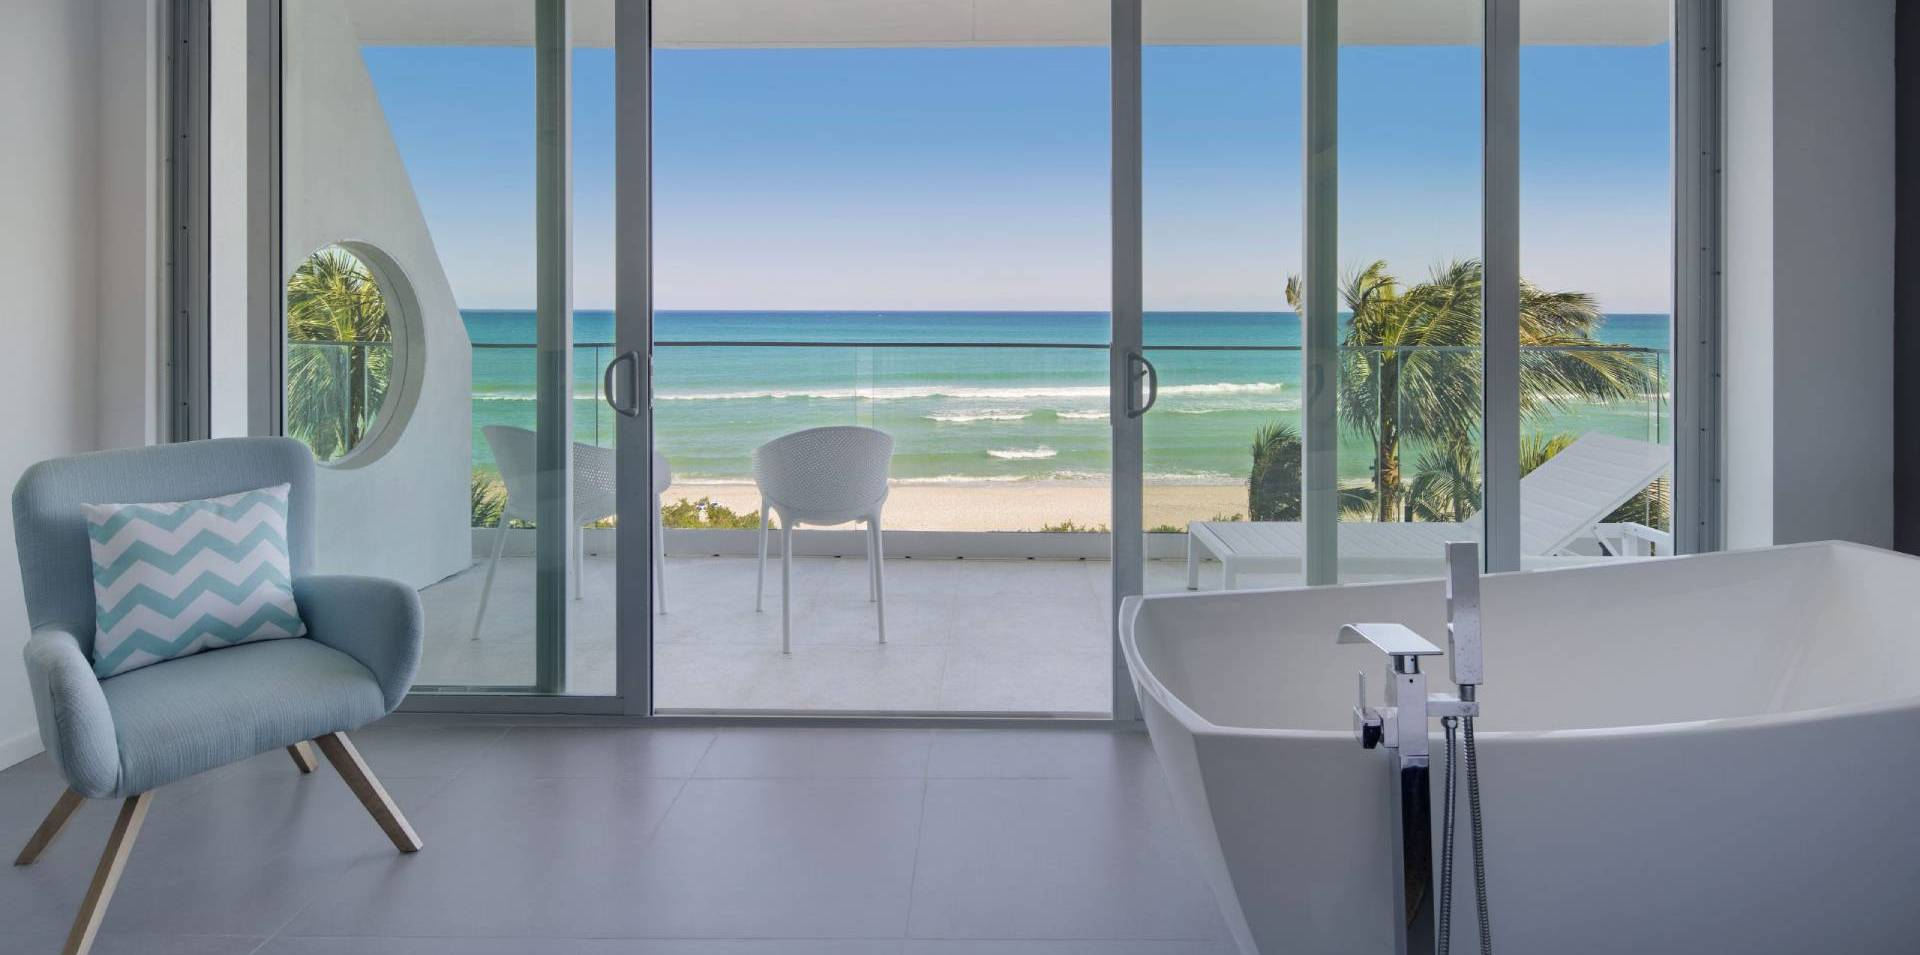 Oceanfront-unique-view-ocean-tub-1-2